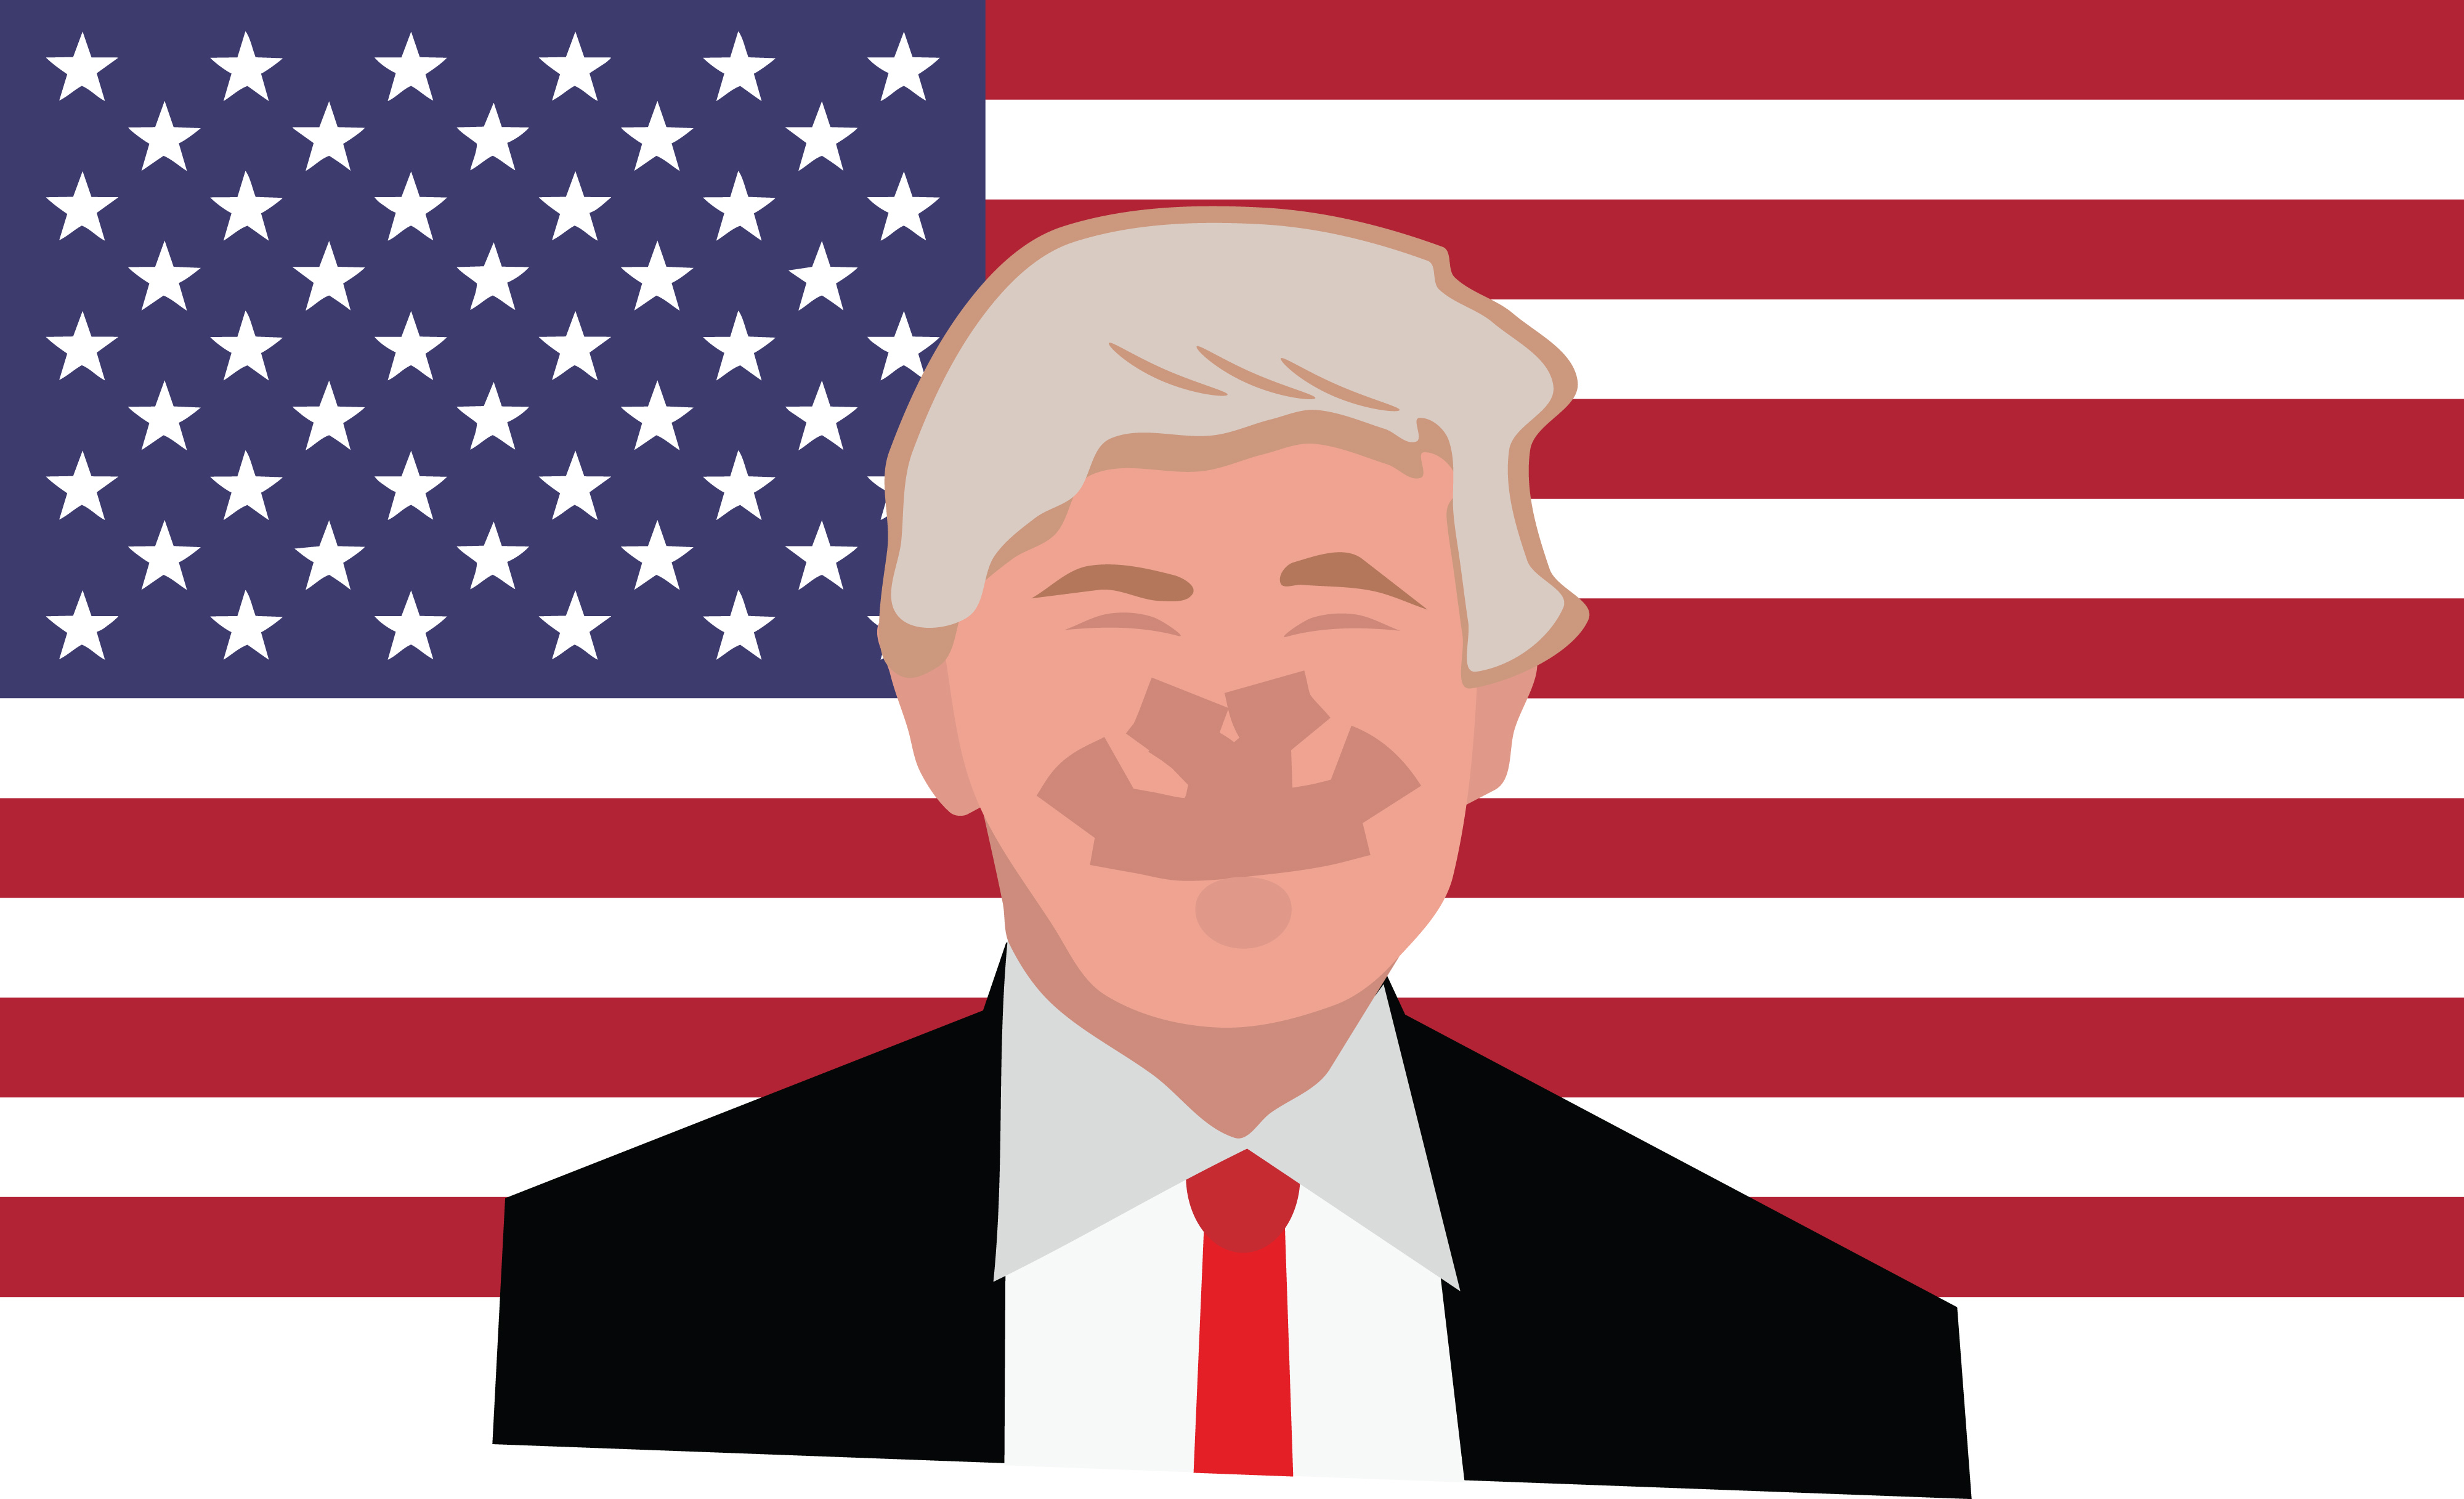 Free Clipart Of Donald Trump And An American Flag